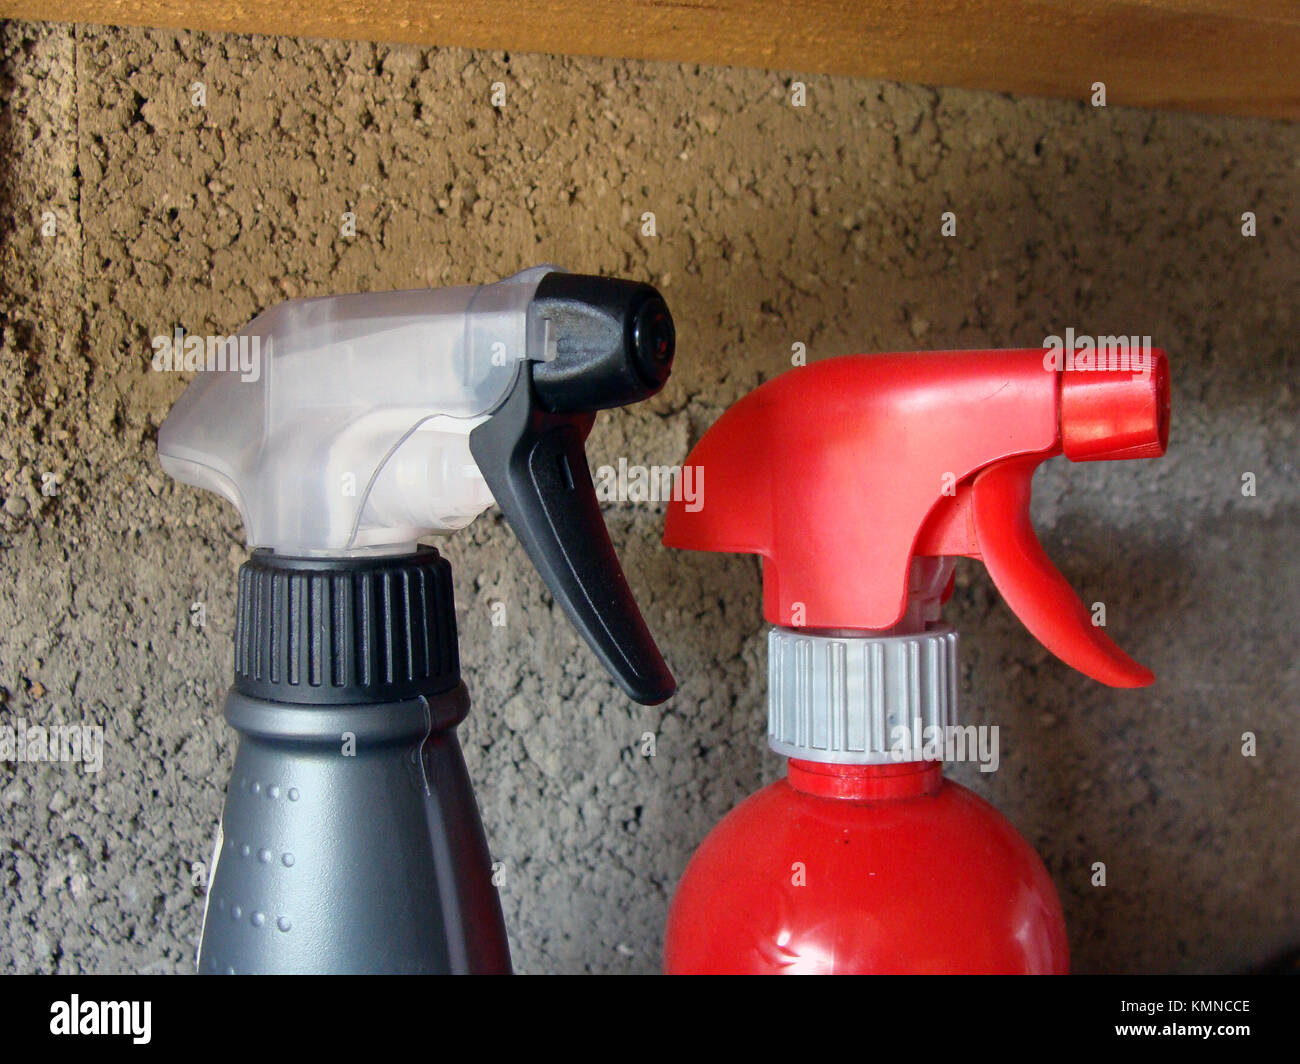 Two hand chemical sprayer heads close up - Stock Image